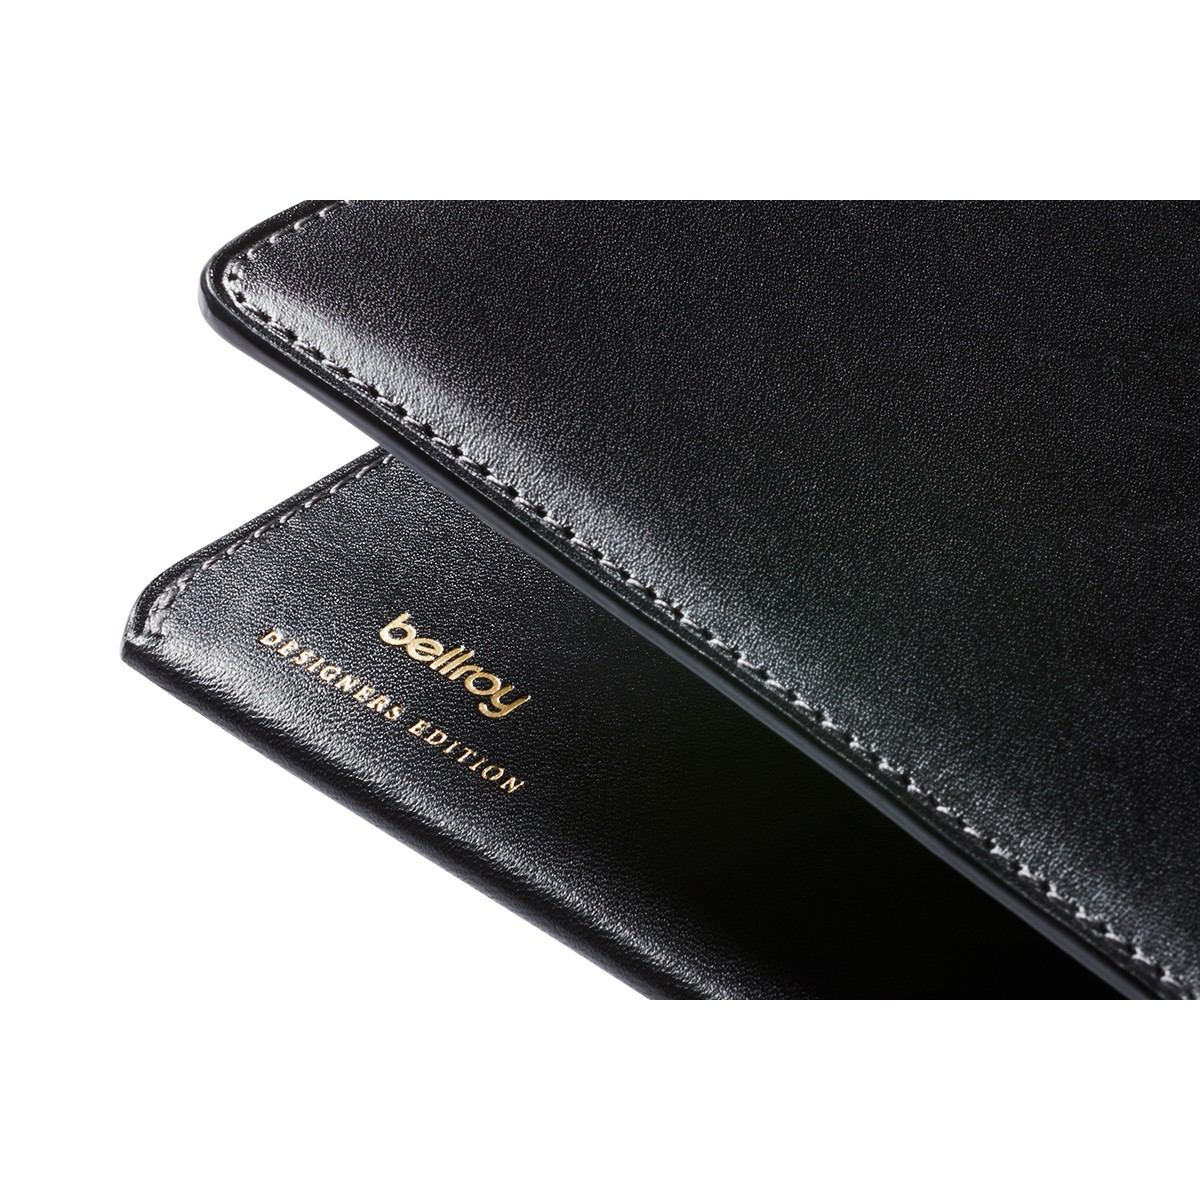 807ec63a0d Bellroy Travel Wallet Designer's Edition - Mukama